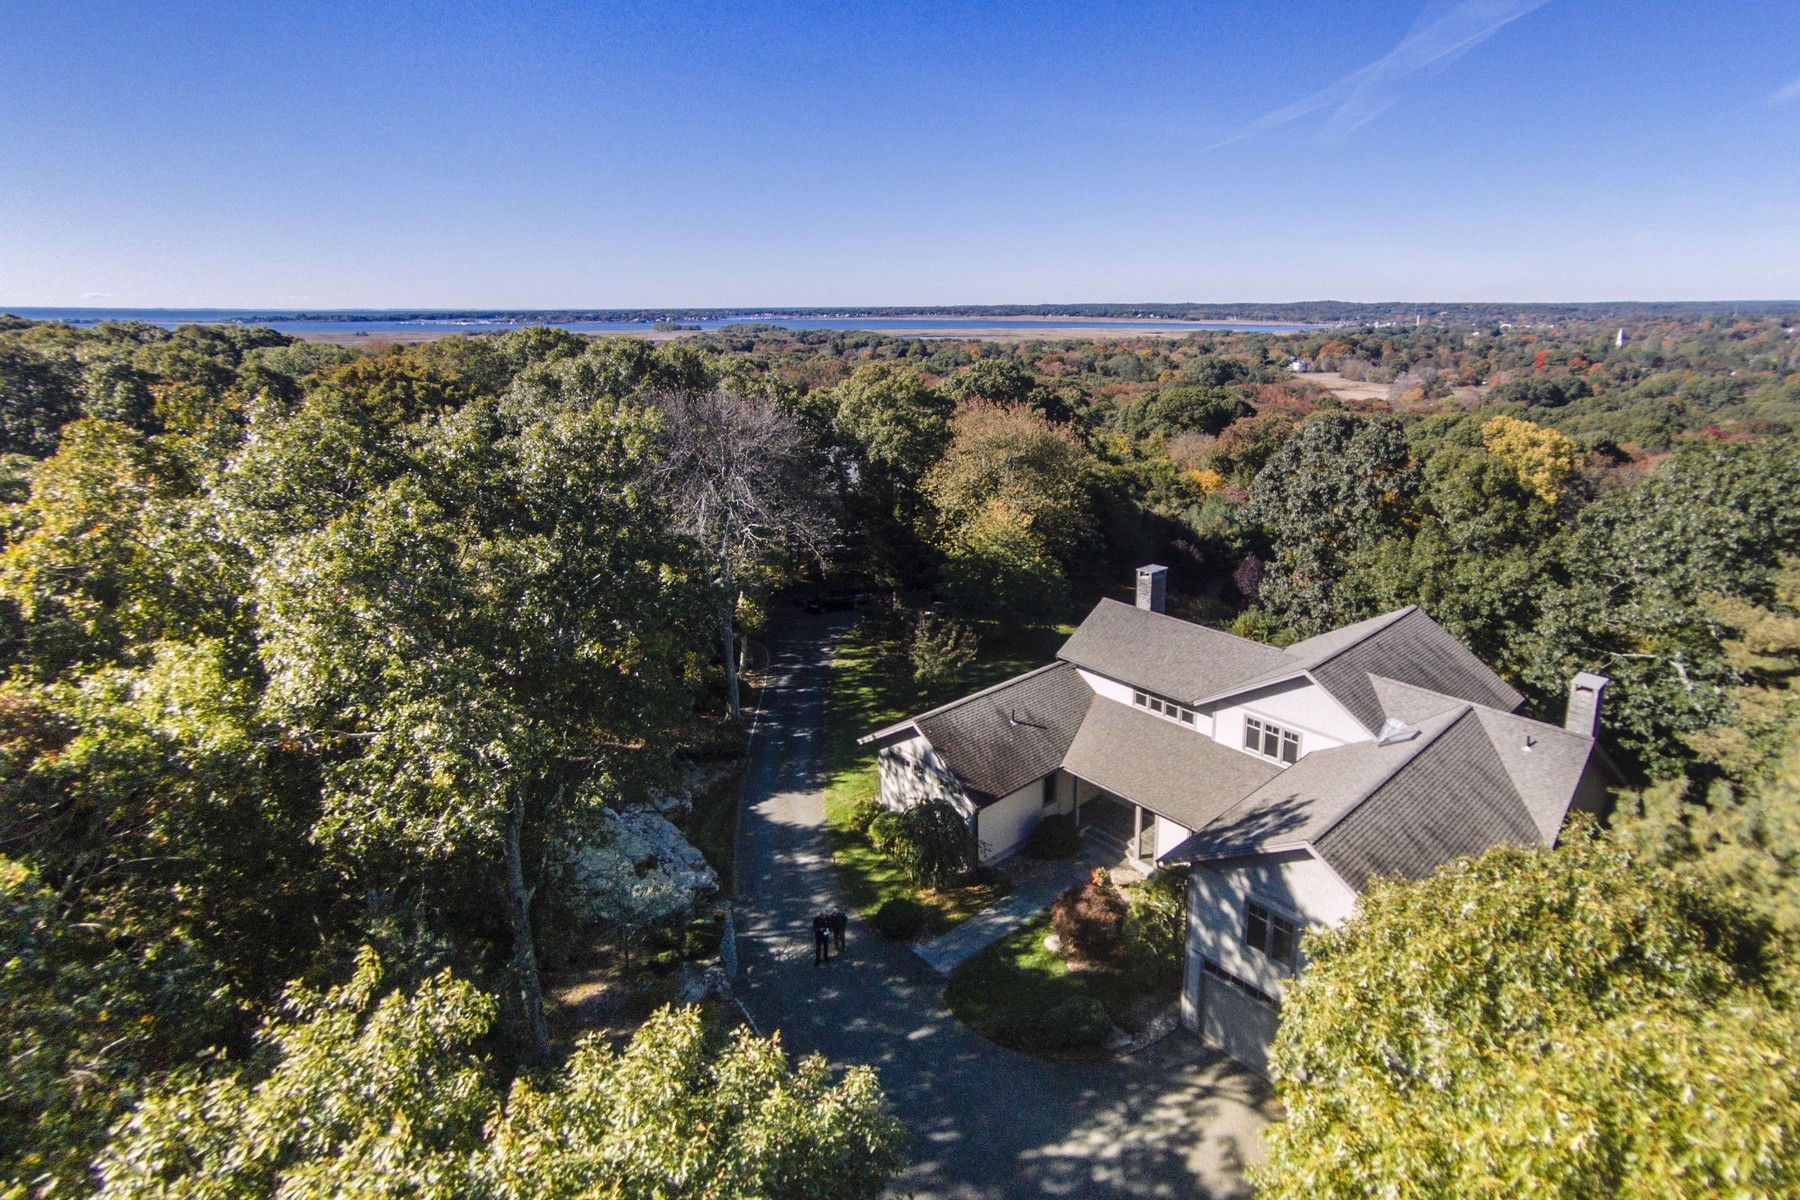 Casa Unifamiliar por un Venta en A Masterpiece in Old Lyme! 13 Meetinghouse Ln Old Lyme, Connecticut, 06371 Estados Unidos